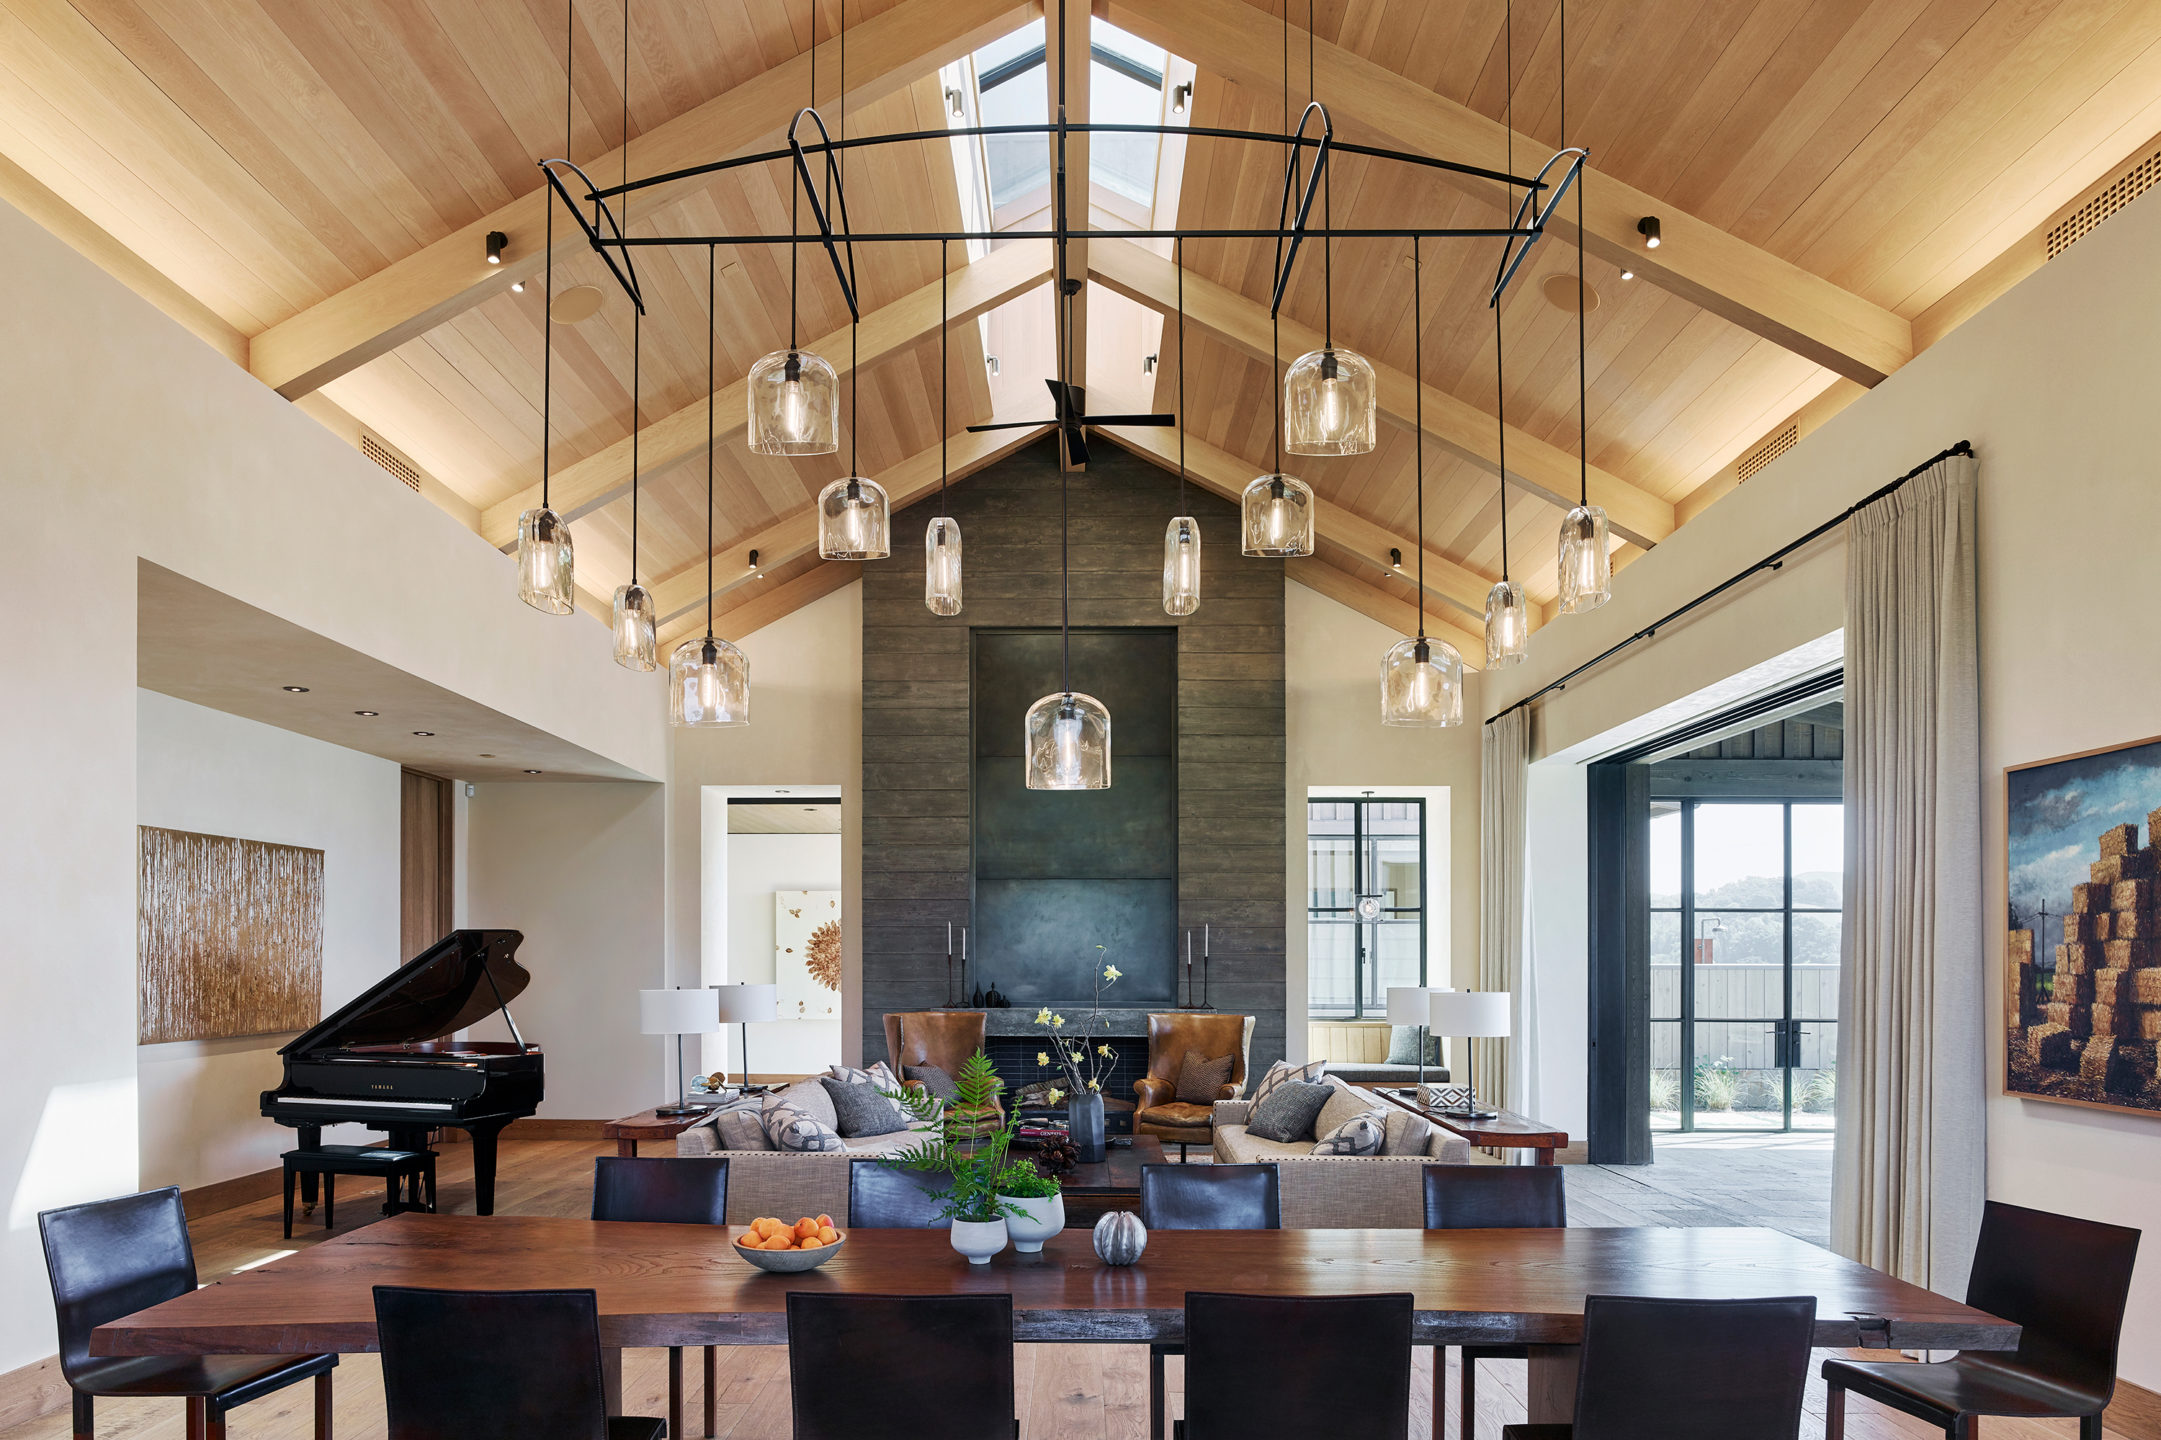 Jennifer_robins_interiors_projects_napa_valley_4_living_room_LR_dining_room_table_DR